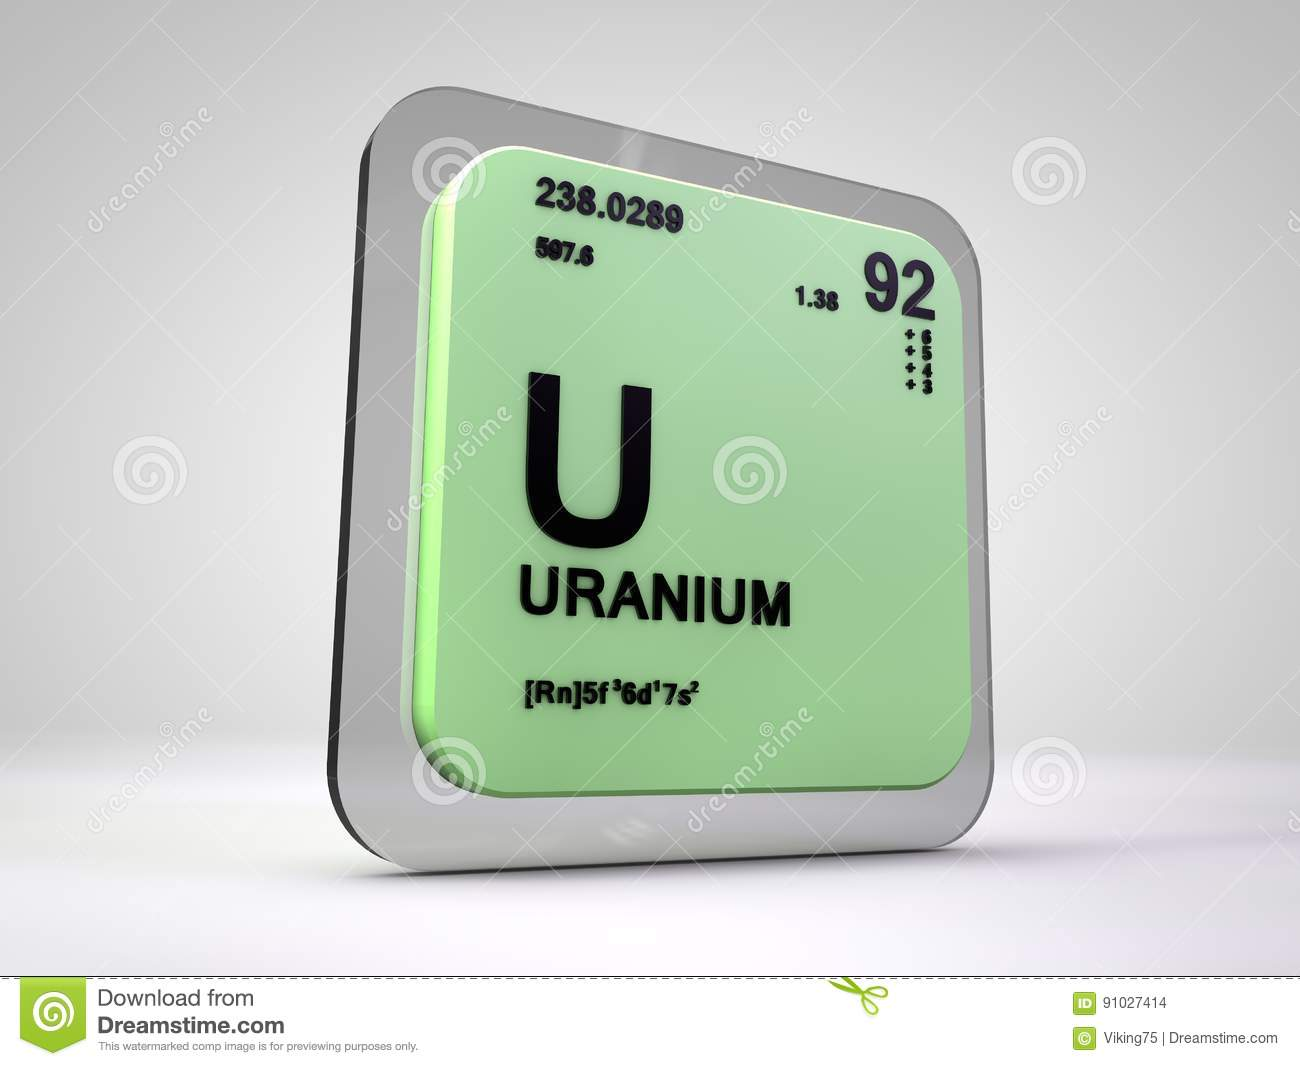 Uranium u chemical element periodic table stock illustration uranium u chemical element periodic table gamestrikefo Image collections